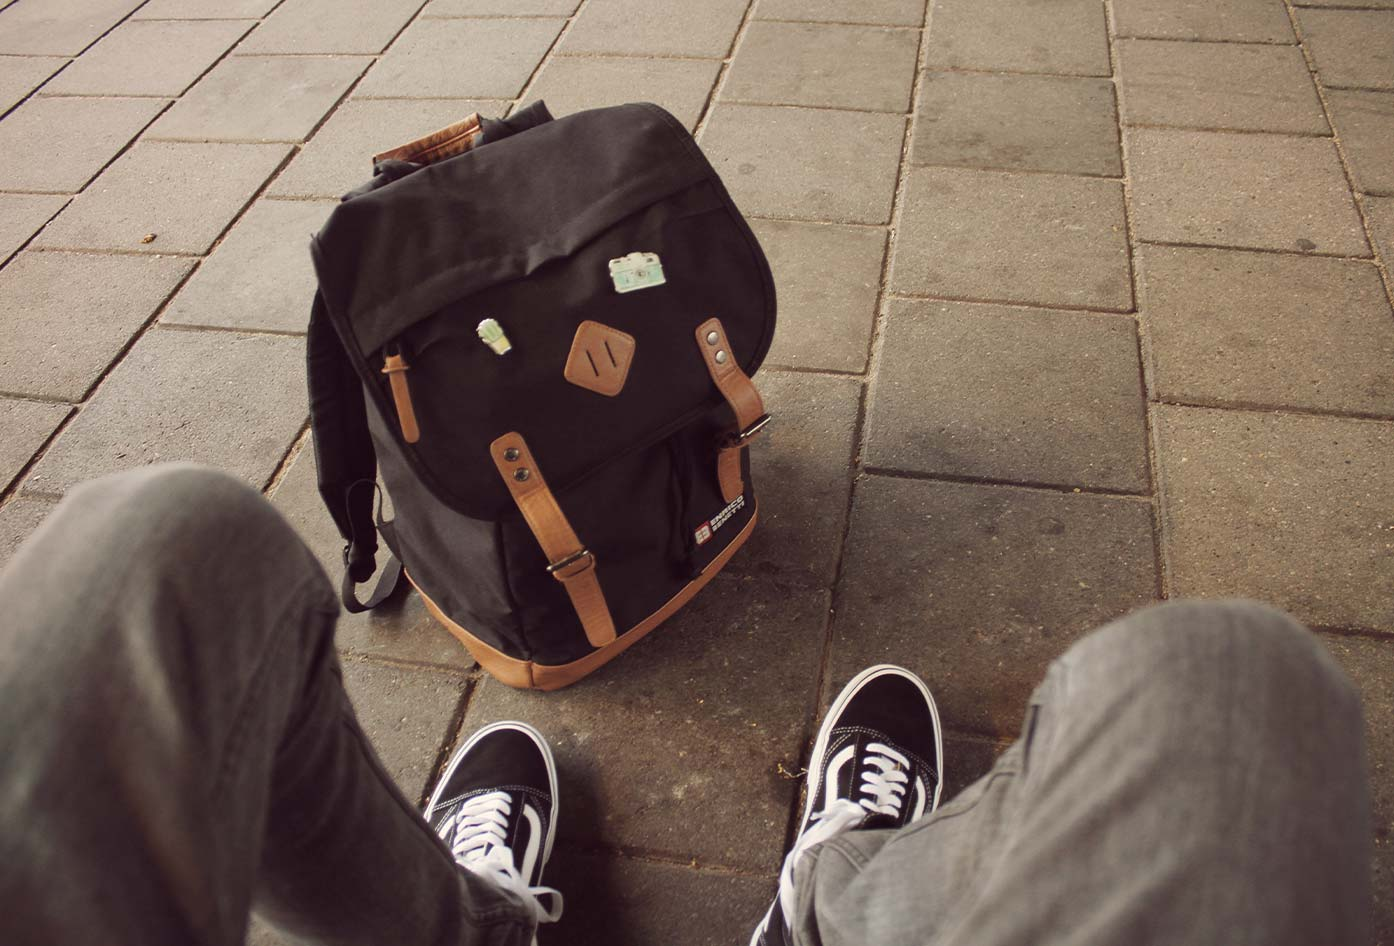 gps luggage trackers for backpacks